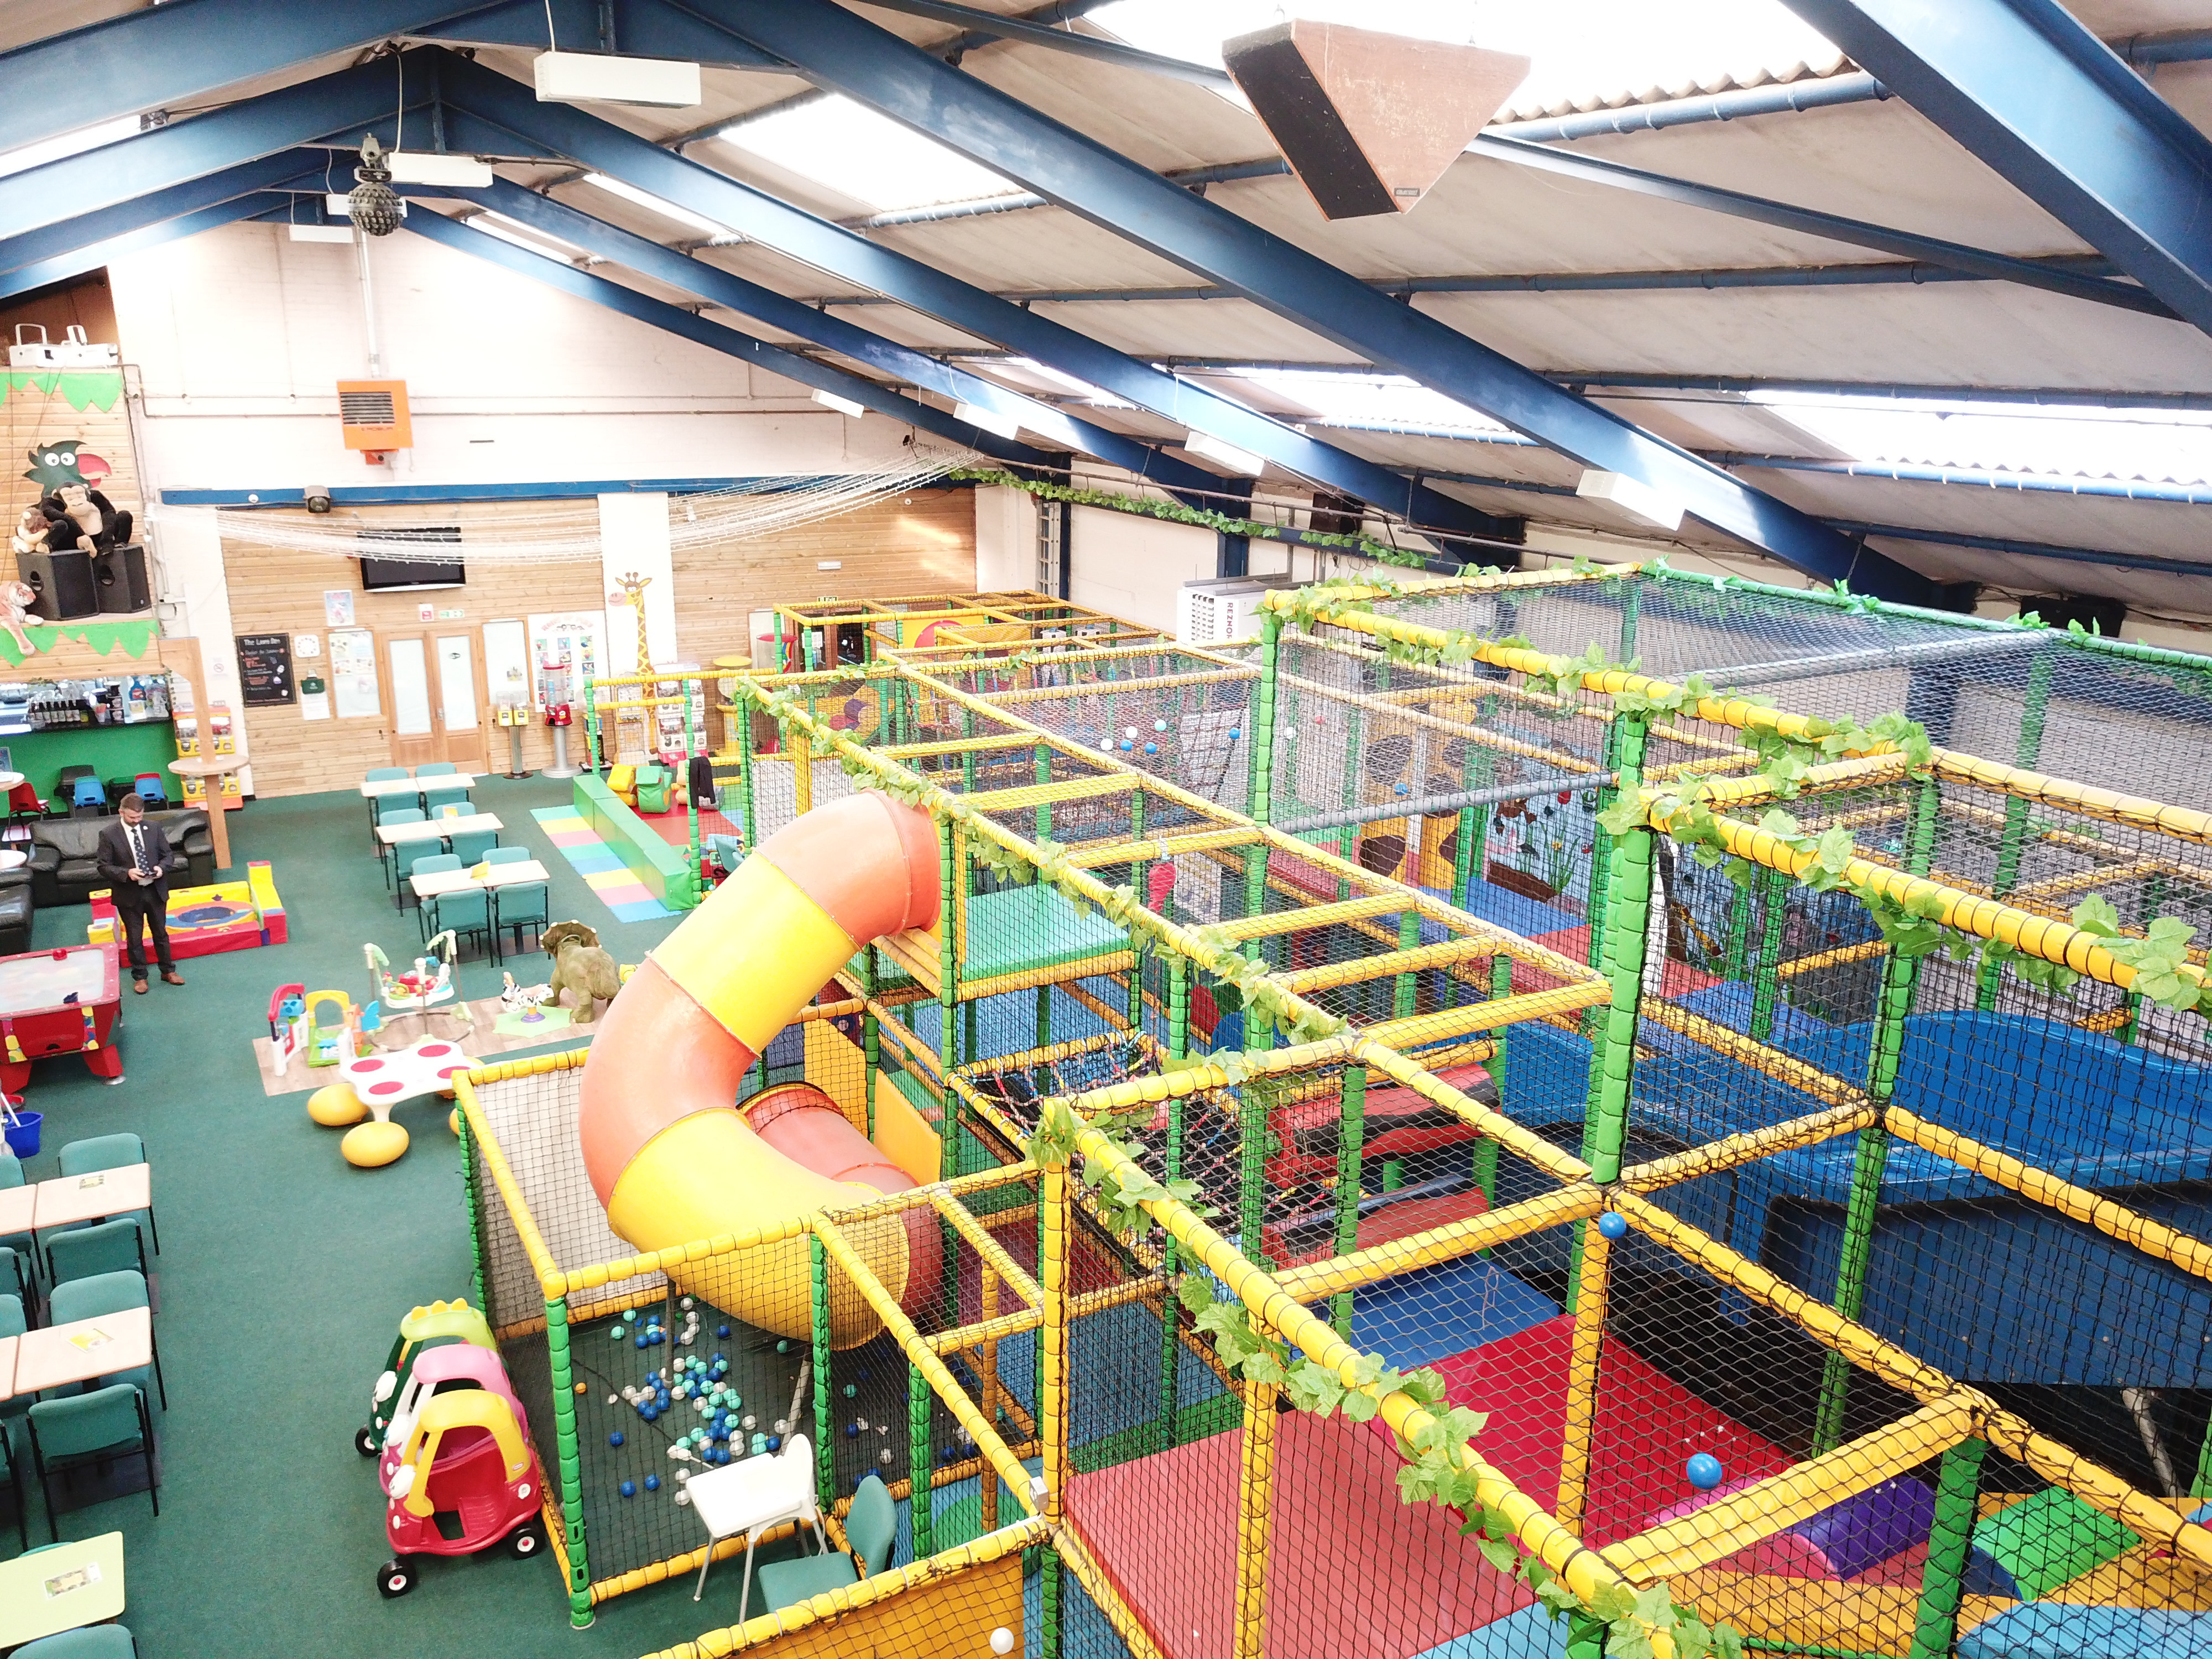 Softplay Session (babies)